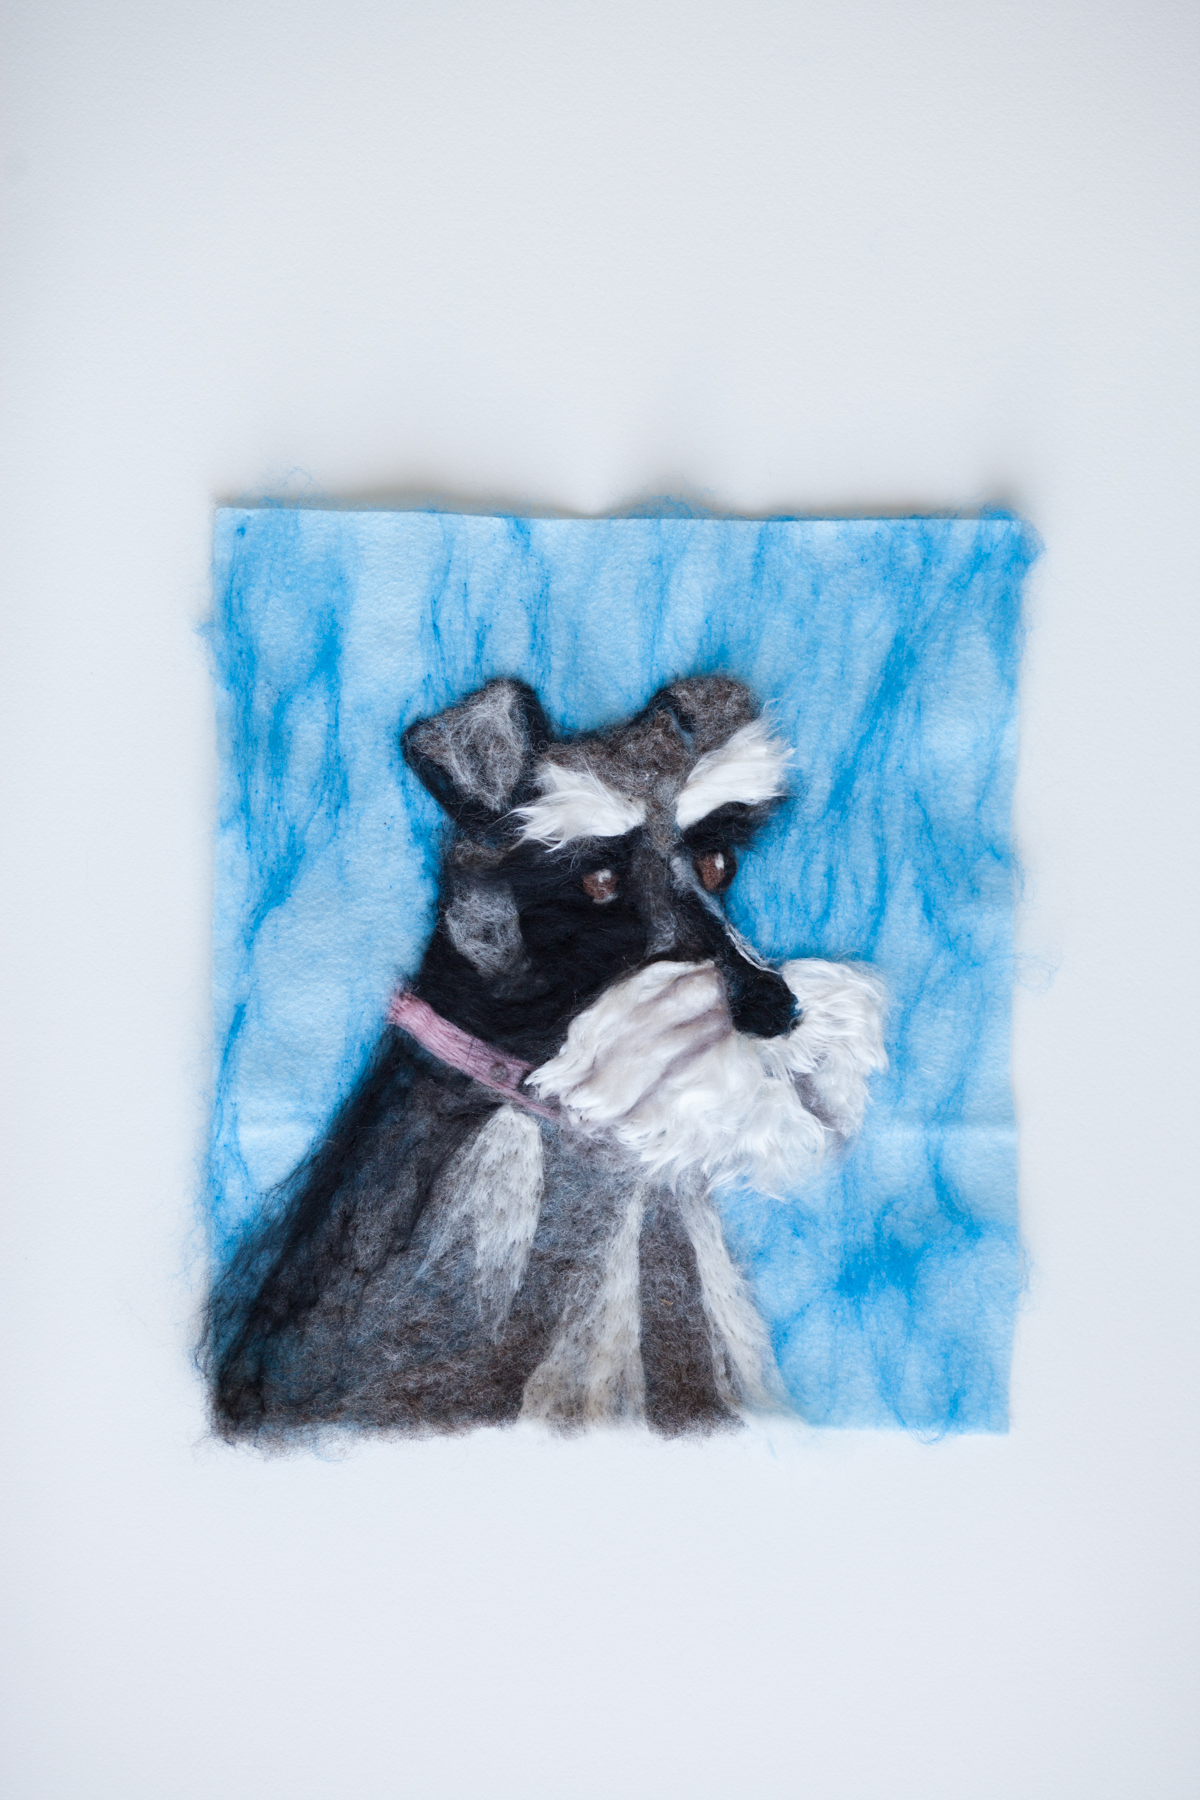 20170321Kmac5732-dog-needle-felting.jpg